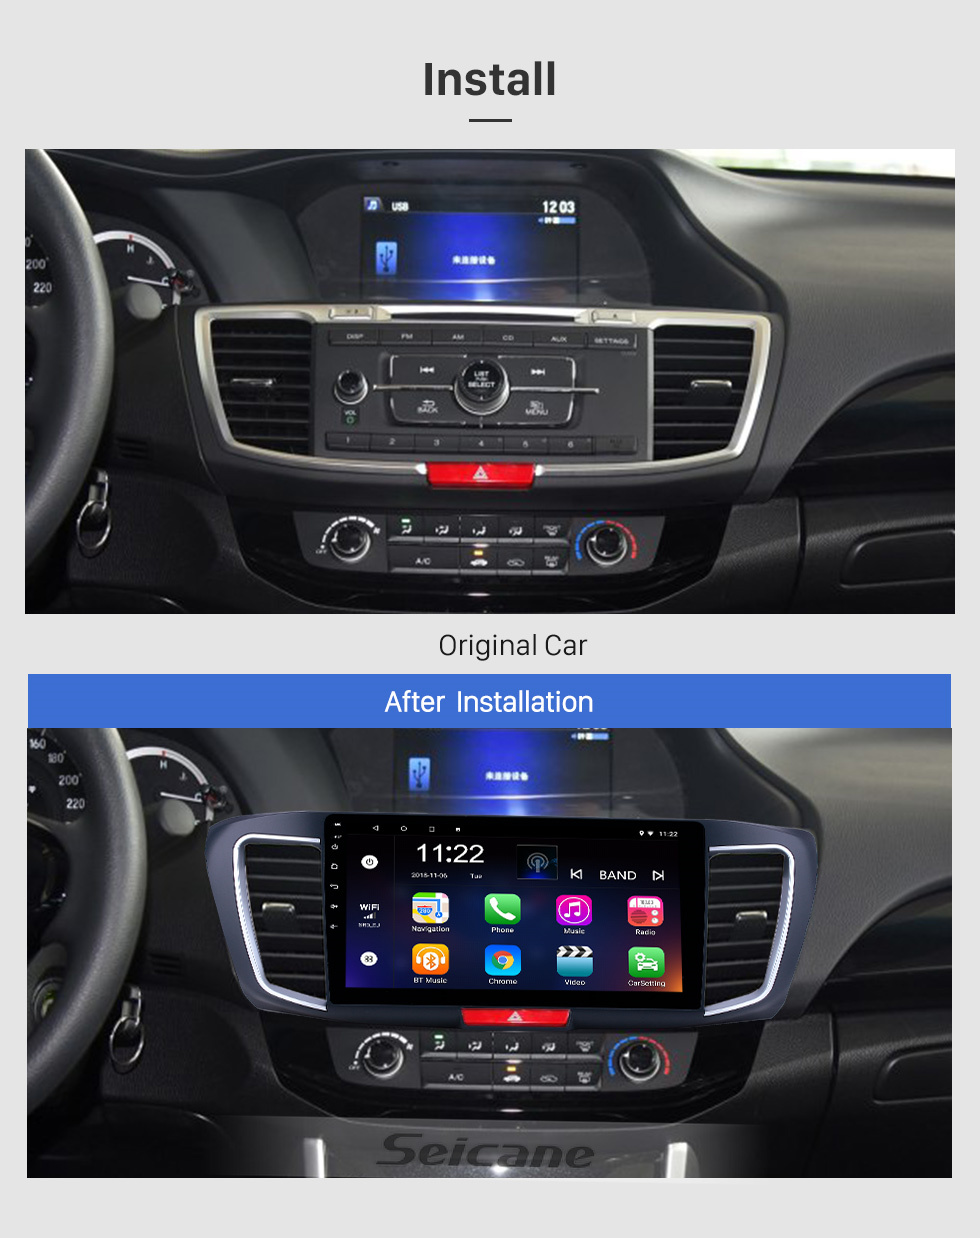 Seicane 10.1 inch Android 10.0 GPS Navigation Radio for 2013 Honda Accord 9 Low Version Bluetooth HD Touchscreen WIFI Carplay support Backup camera